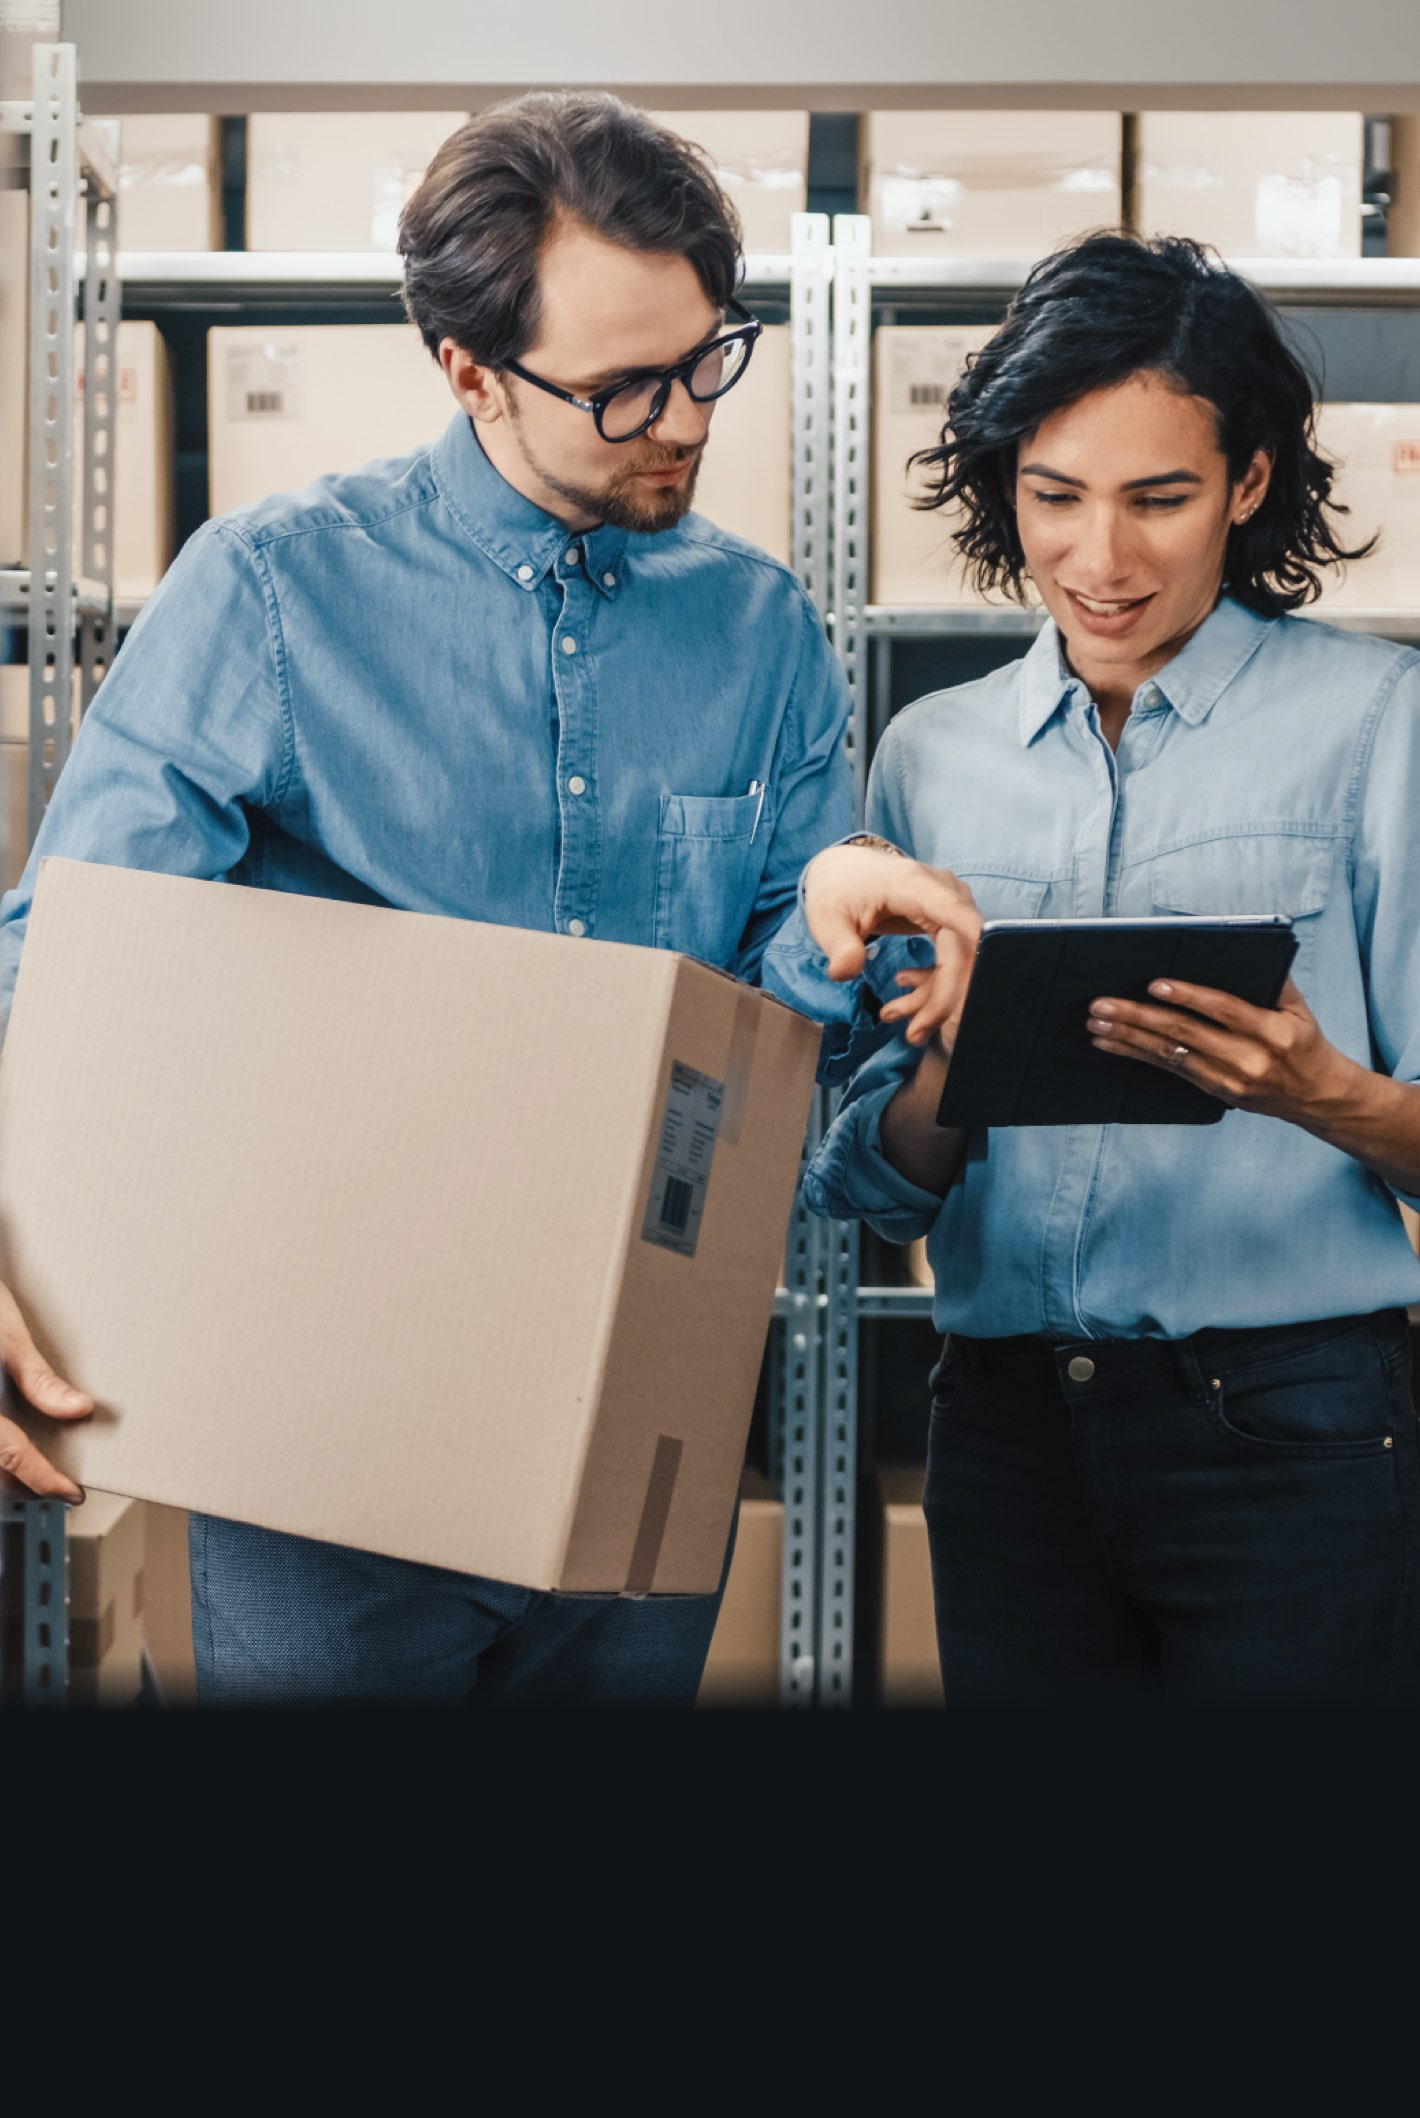 Male and female worker in a warehouse